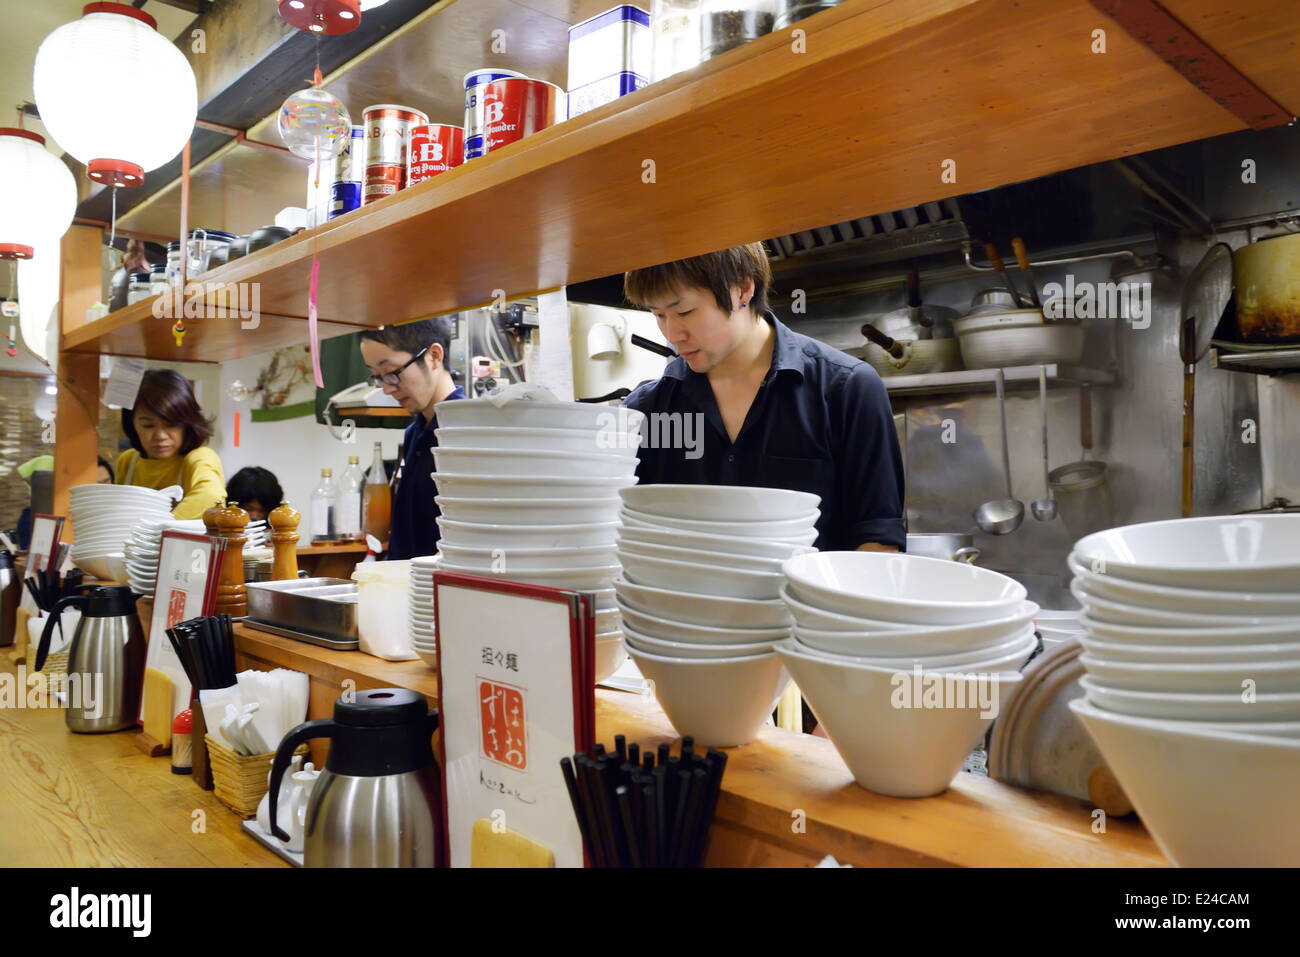 Ramen Restaurant Kitchen In Tokyo Japan Stock Photo 70168300 Alamy